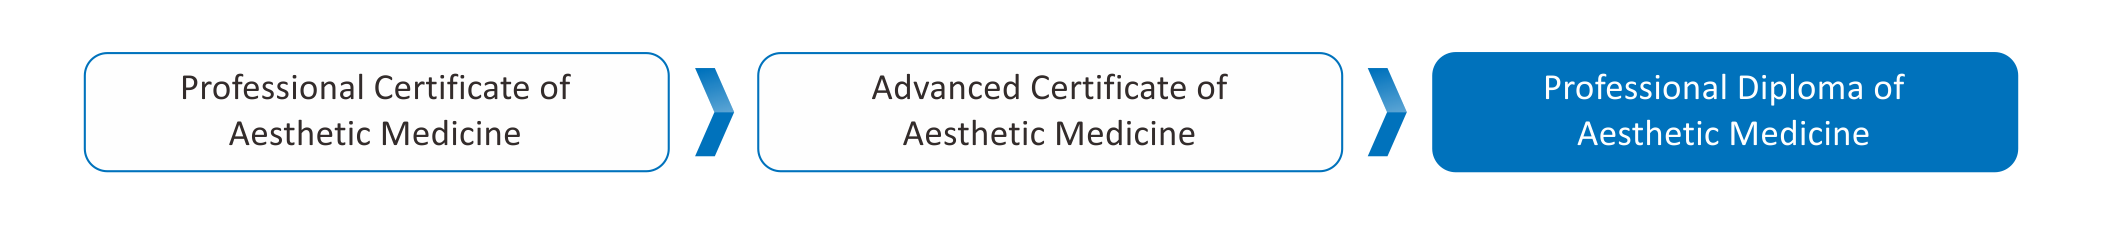 Professional Diploma of Aesthetic Medicine.png